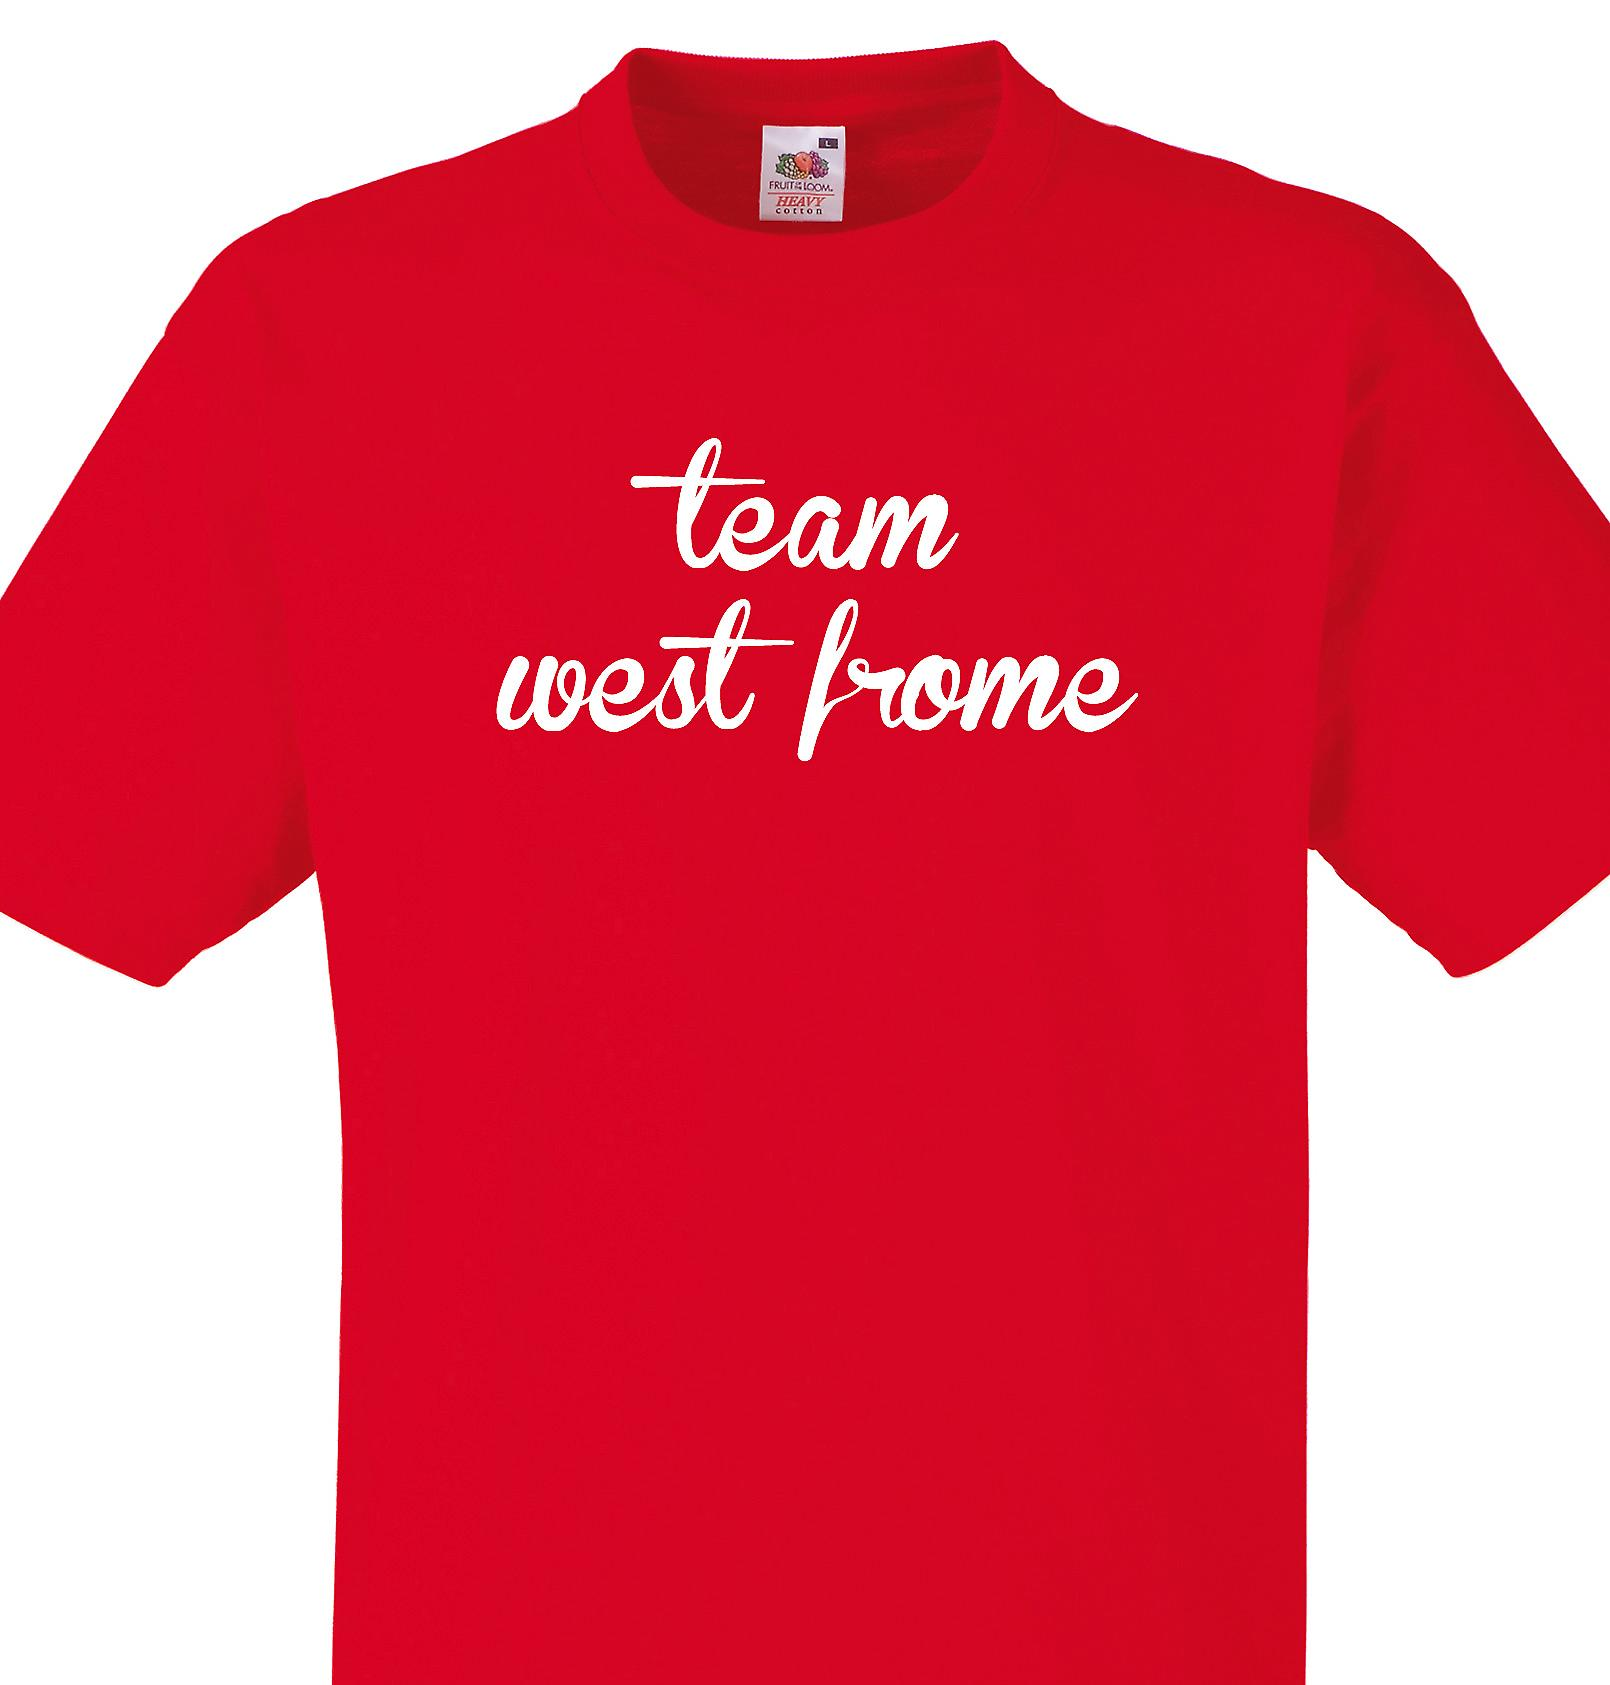 Team West frome Red T shirt